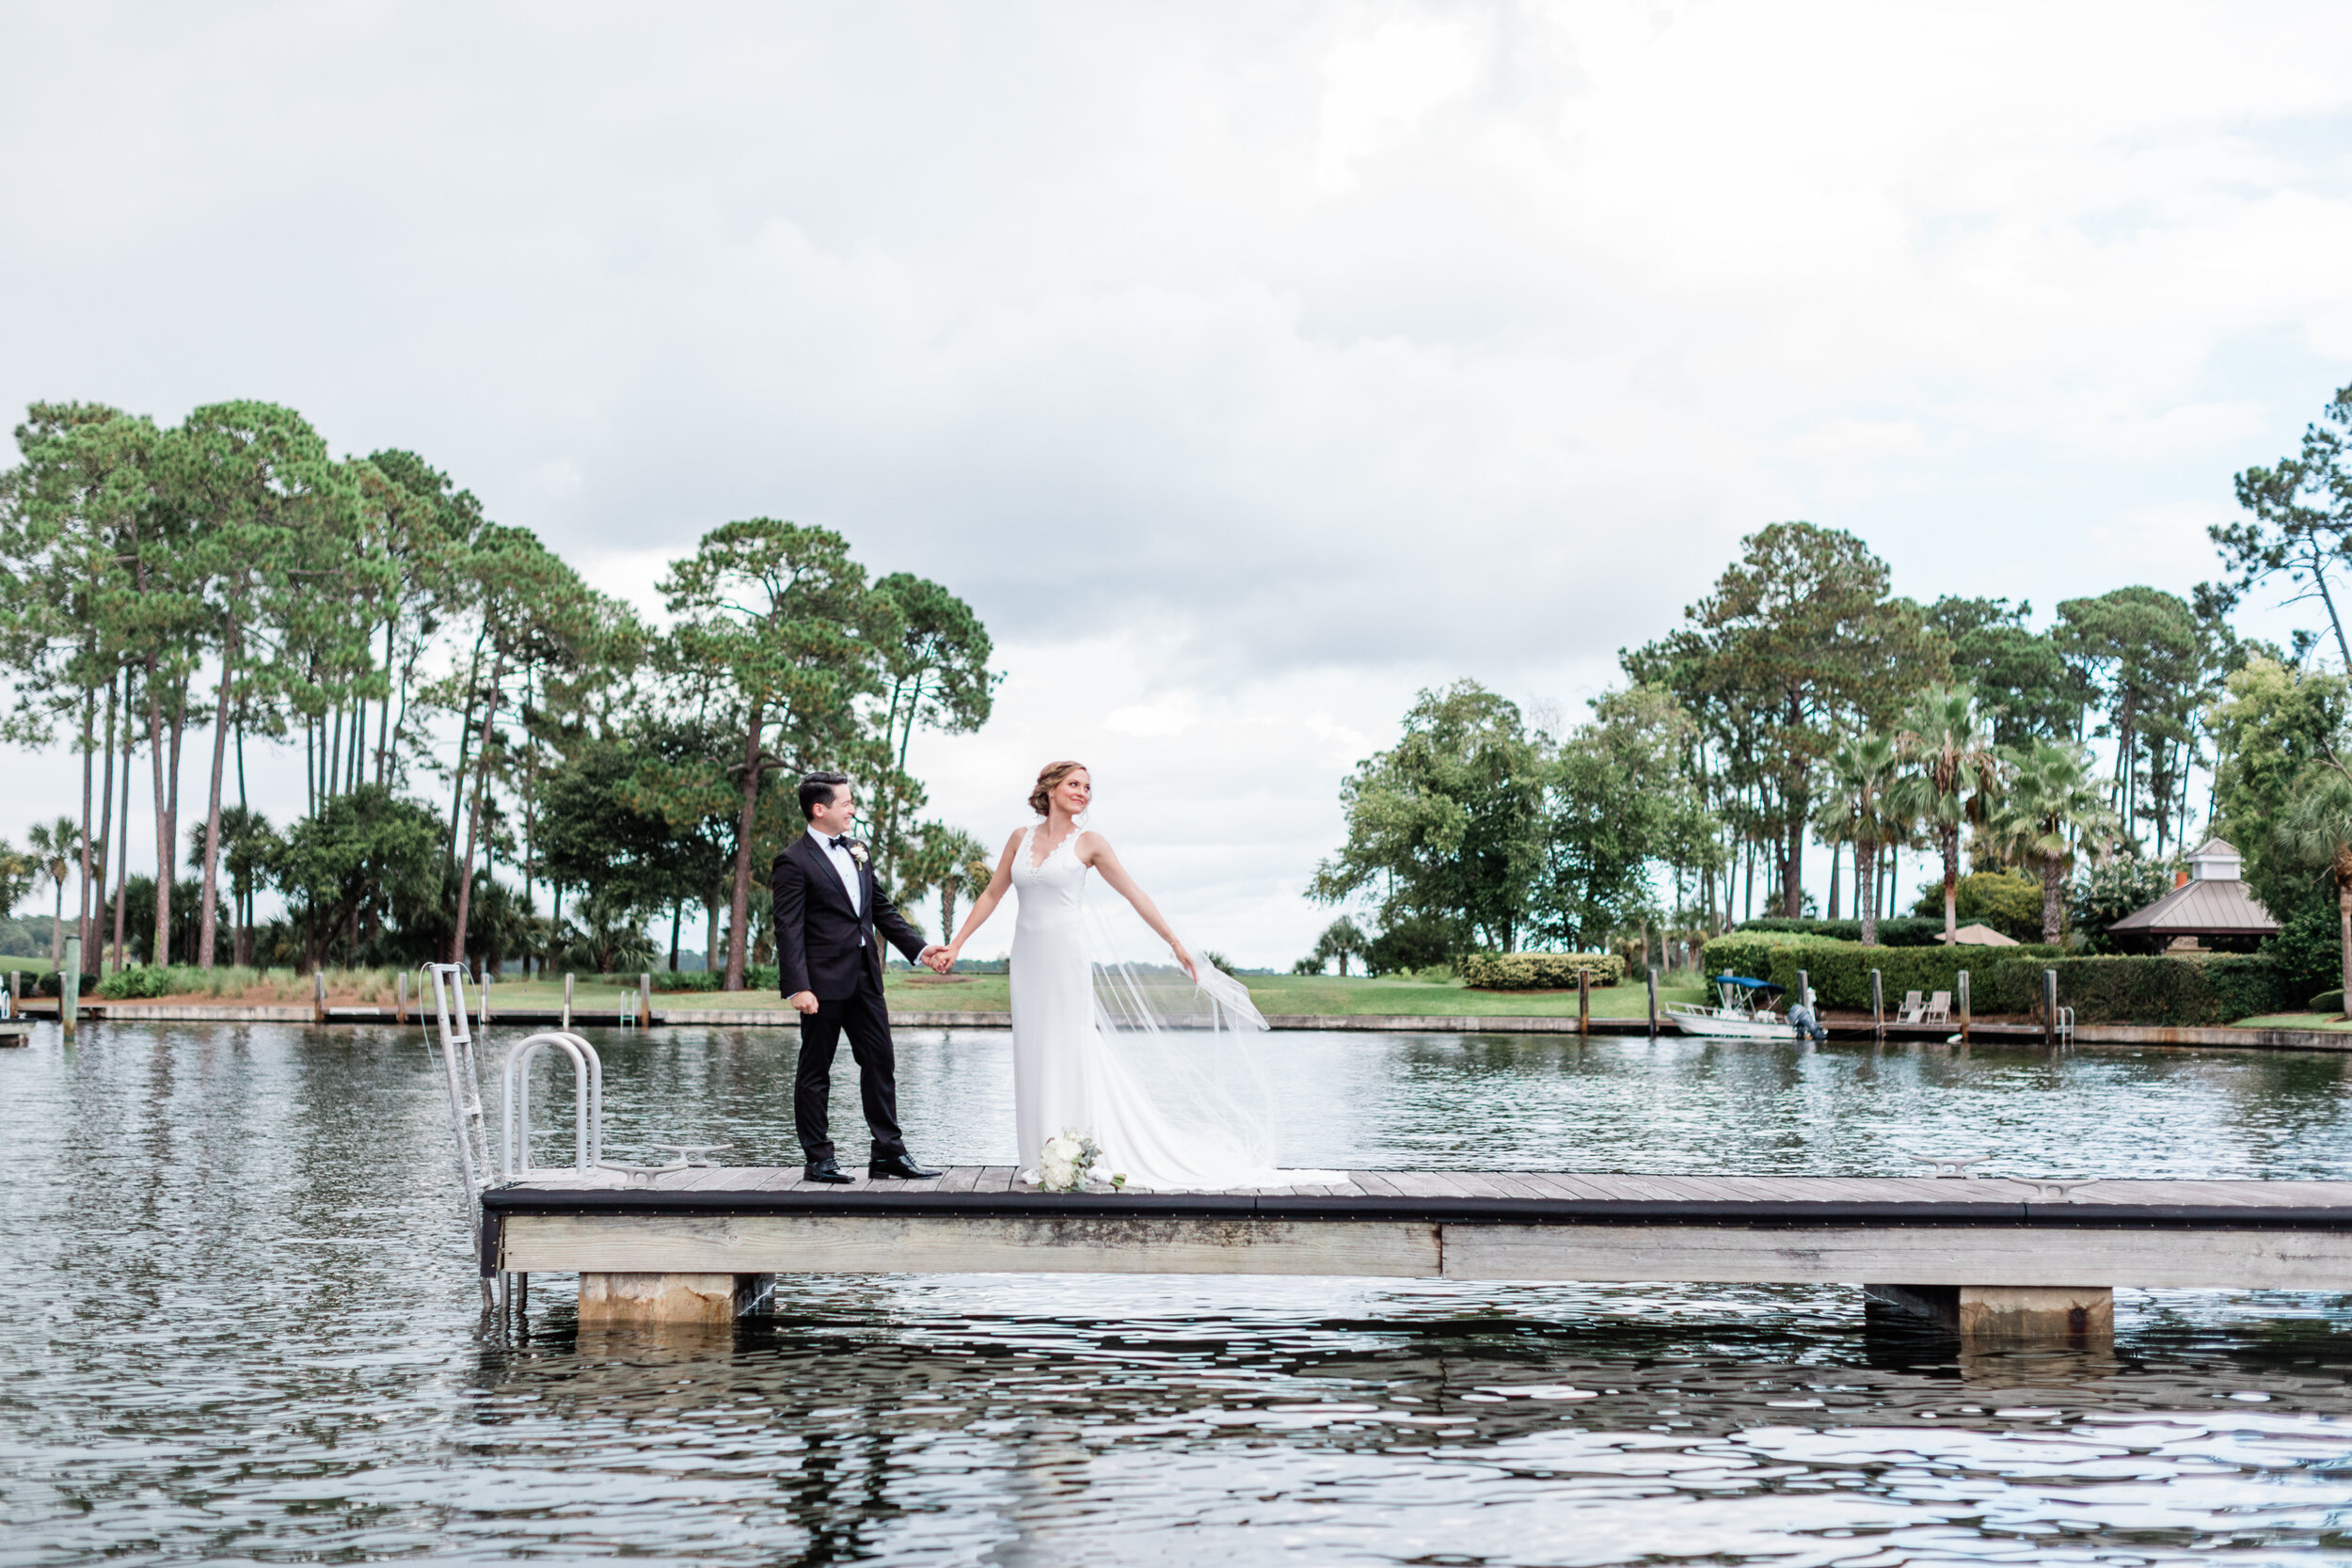 AptBPhotography_TheresaChris_Wedding_Slideshow-28.jpg